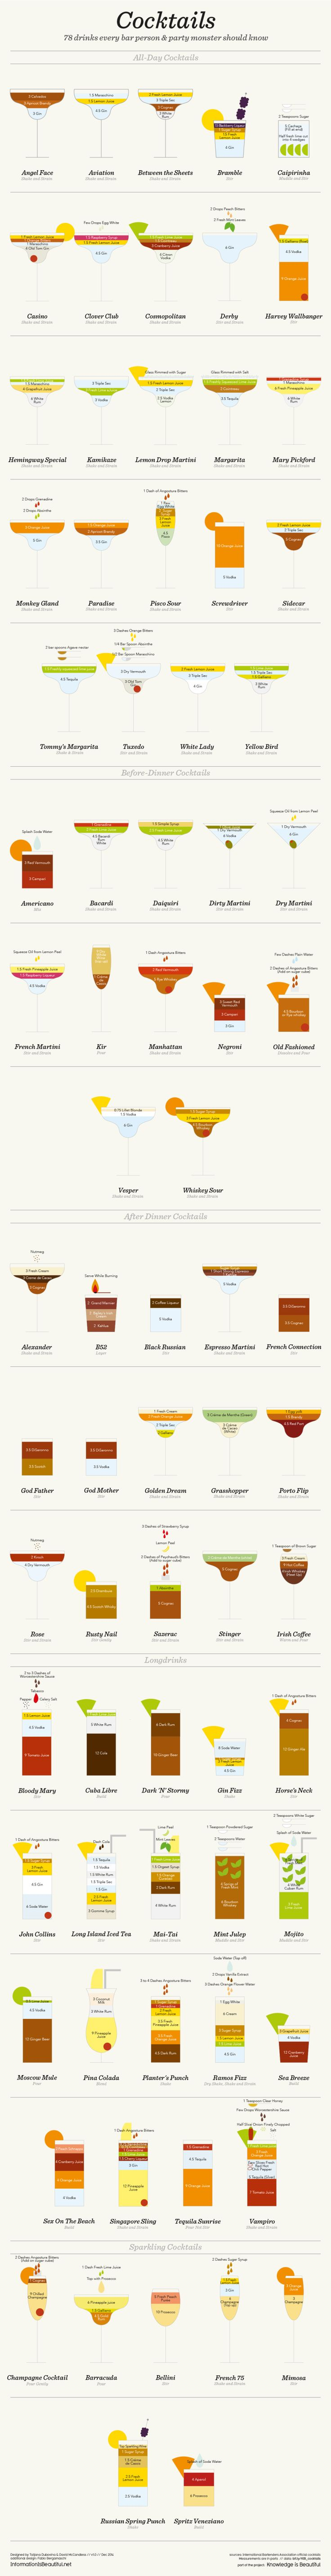 Wondering how to make some of the most common cocktails? Check out this infographic.